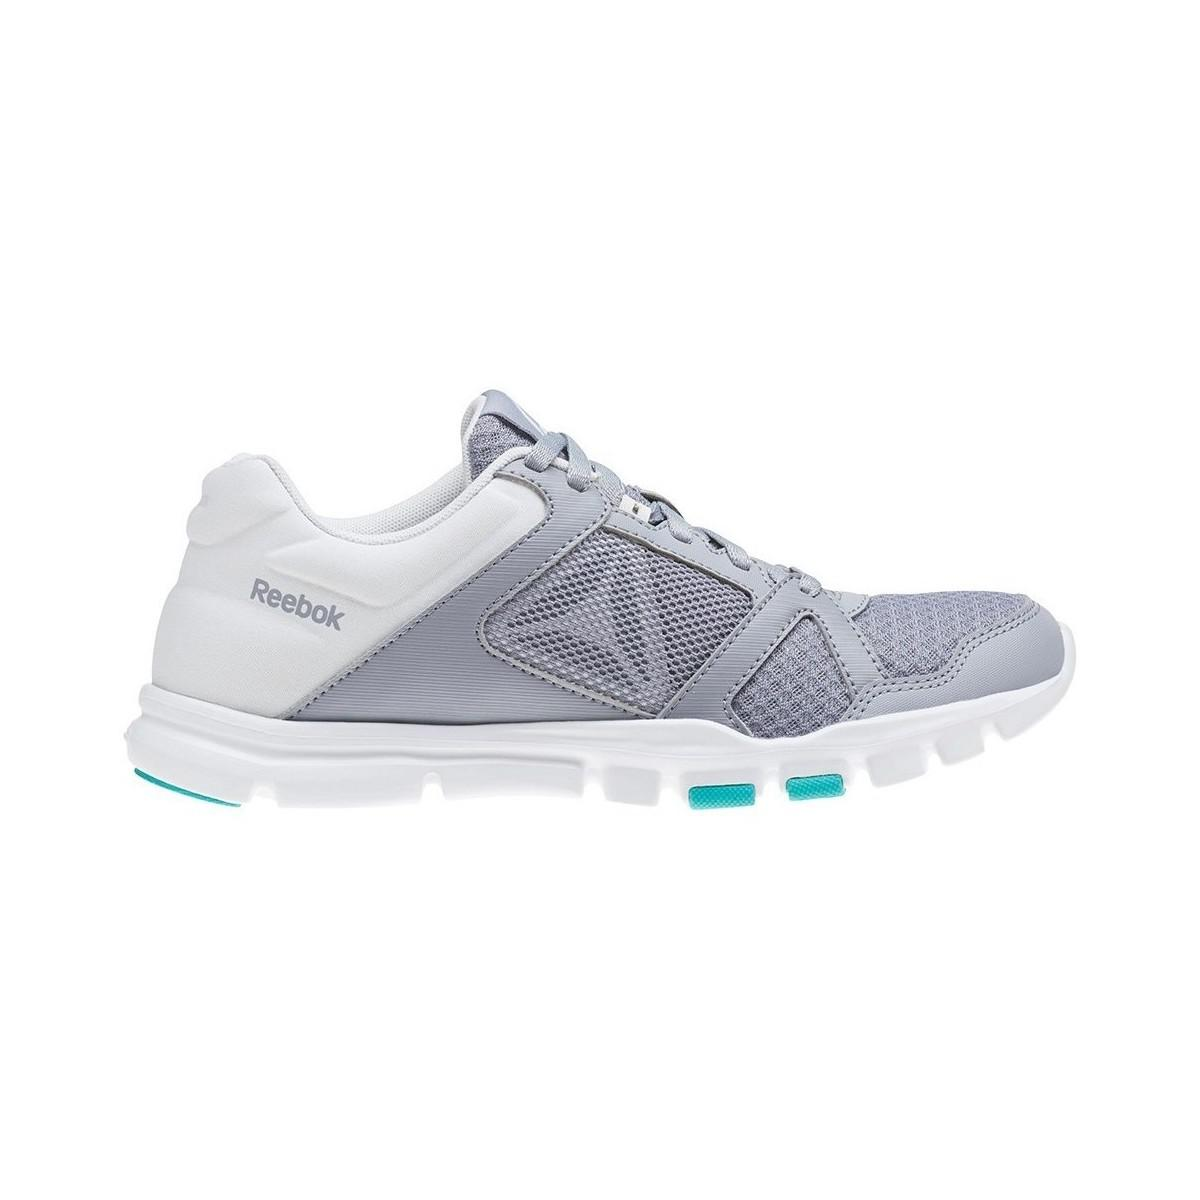 2530233c0ebe99 Reebok - Gray Yourflex Trainette 10 Mt Grey Women s Shoes (trainers) In Grey  -. View fullscreen